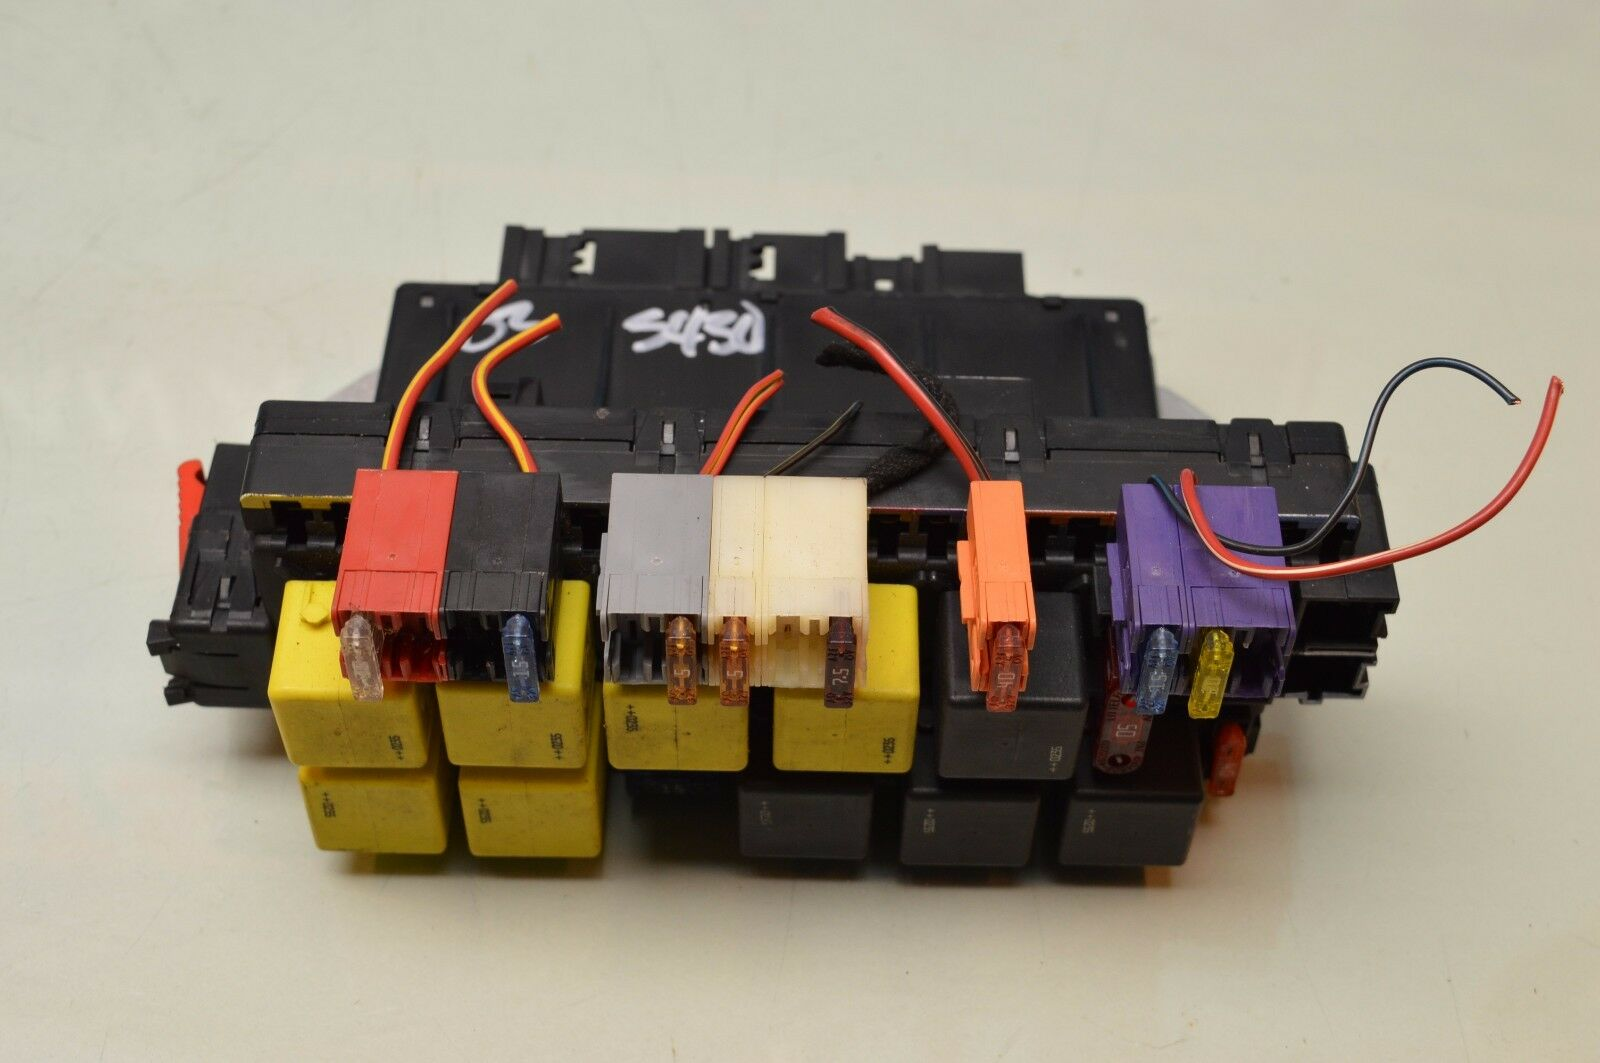 00 06 W220 Mercedes S430 S500 S55 Front Left Sam Fuse Relay Box 2000 Home 0325458232